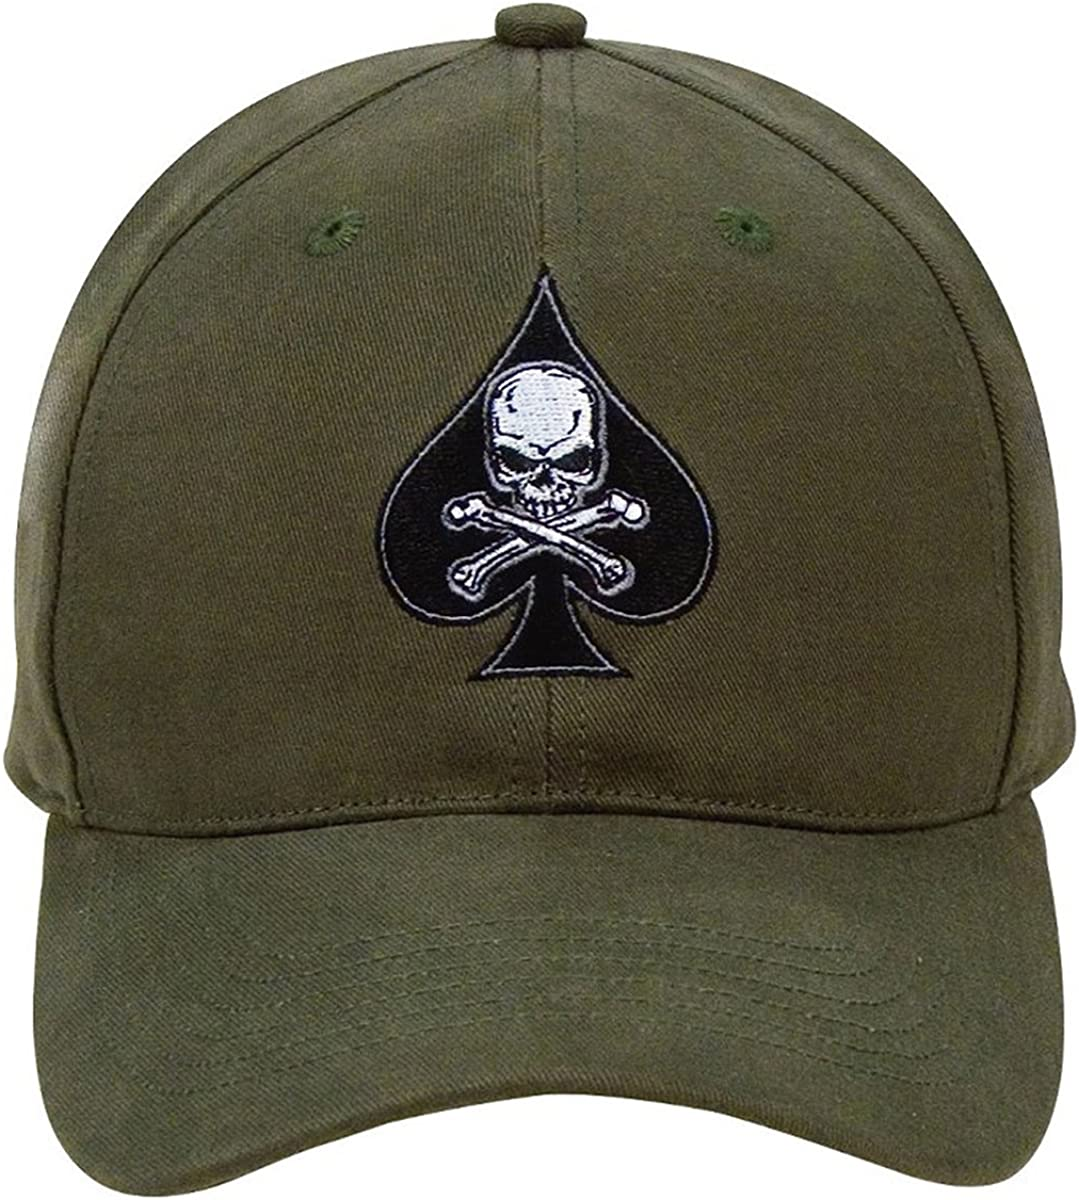 Rothco Recommended Sales of SALE items from new works Airborne Cap